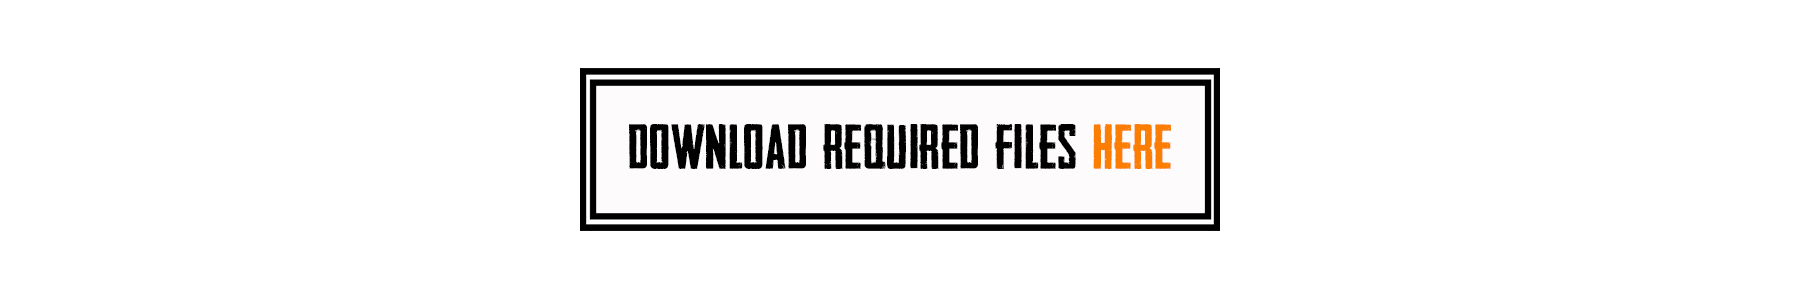 file-download-button.png